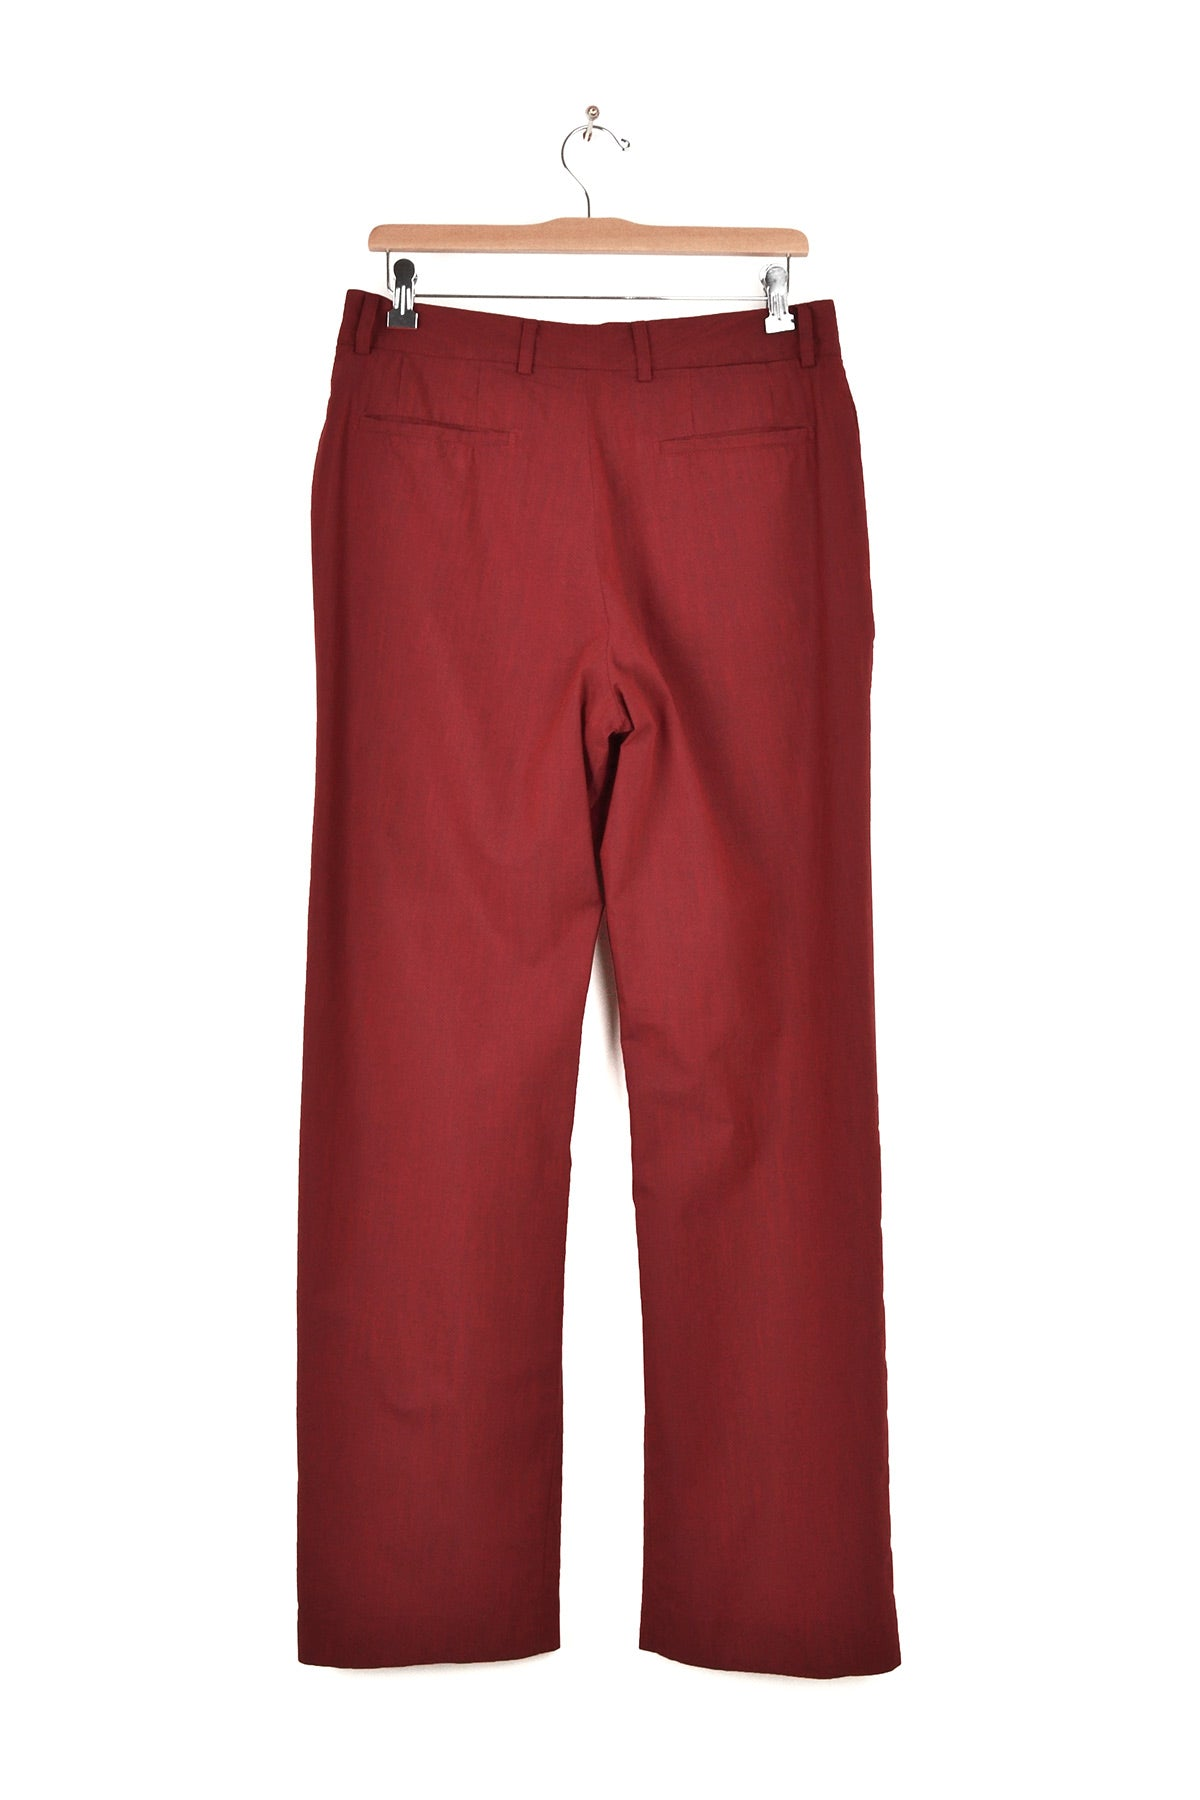 2003 S/S ANATOMICAL TROUSERS IN TEXTURED COTTON